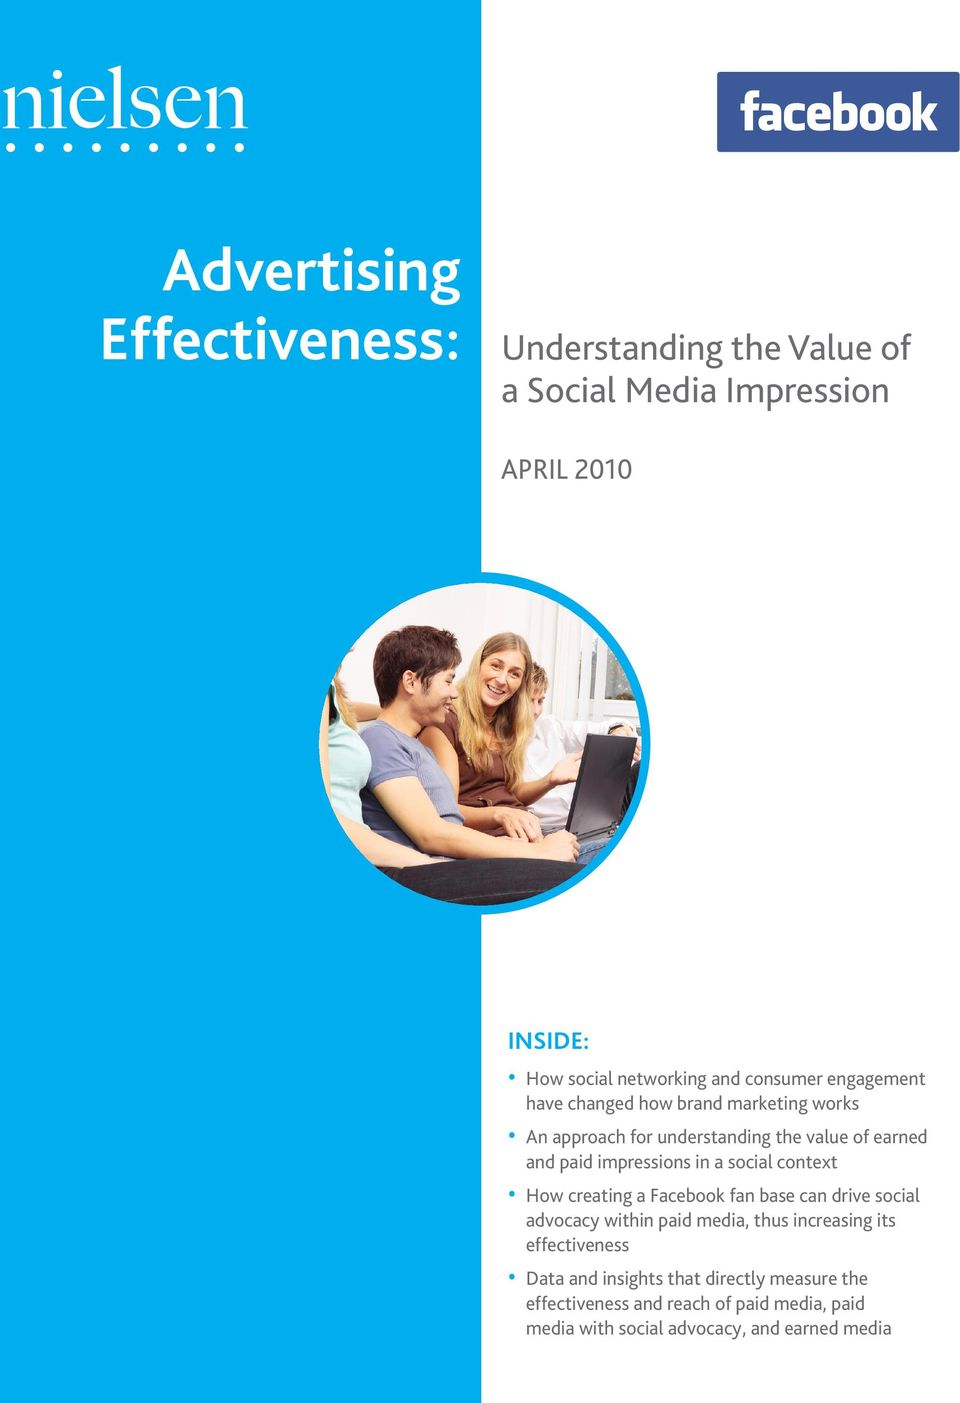 in a social context How creating a Facebook fan base can drive social advocacy within paid media, thus increasing its